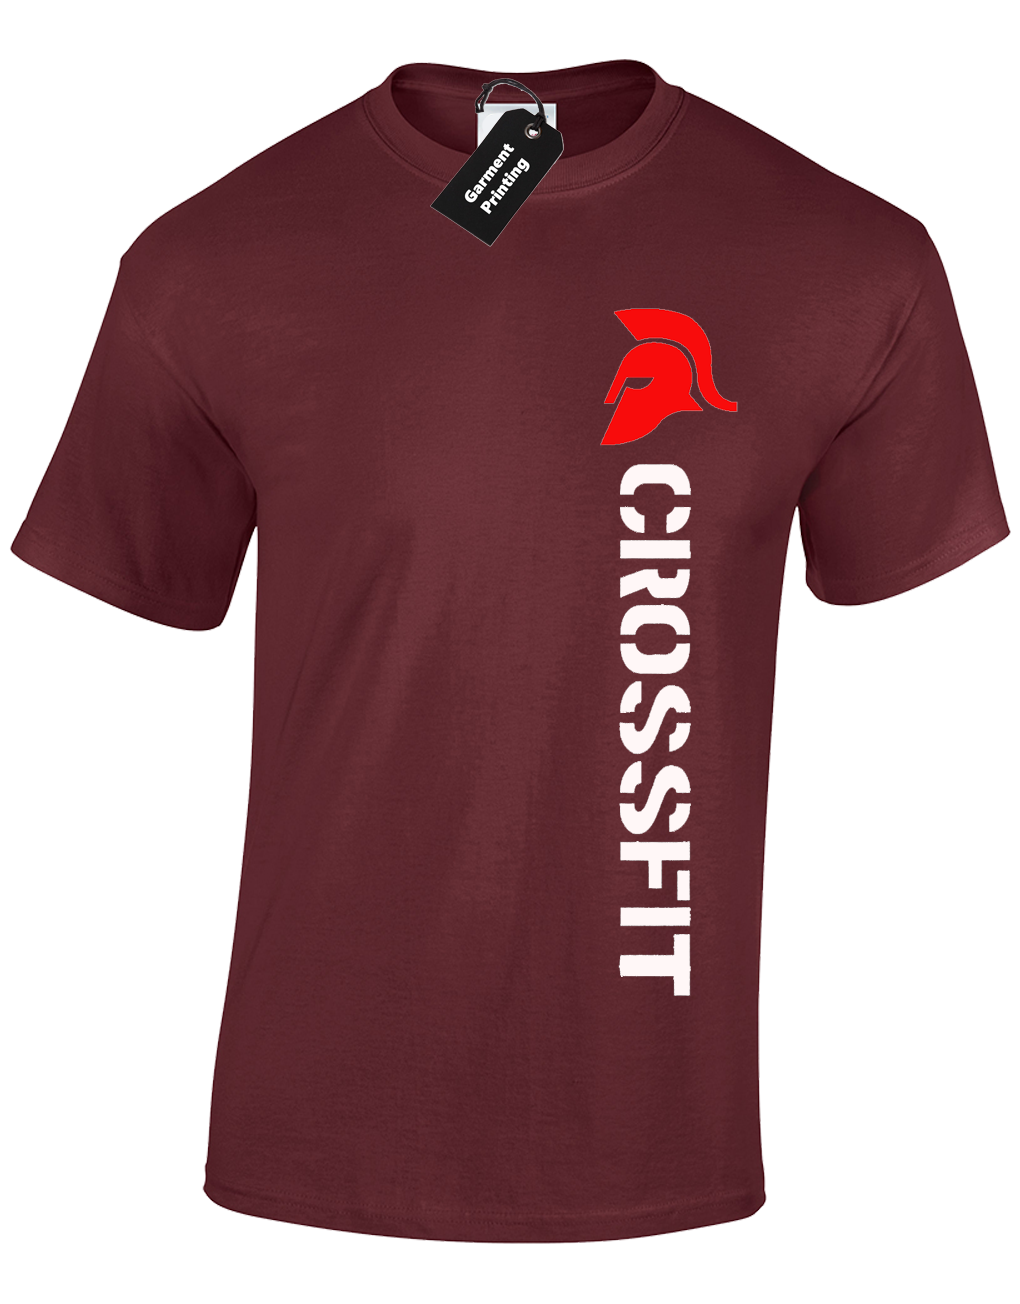 405405ef7 Crossfit Spartan Mens T-Shirt Training Top For Gym Weights Running Fitness  8 8 of 12 ...